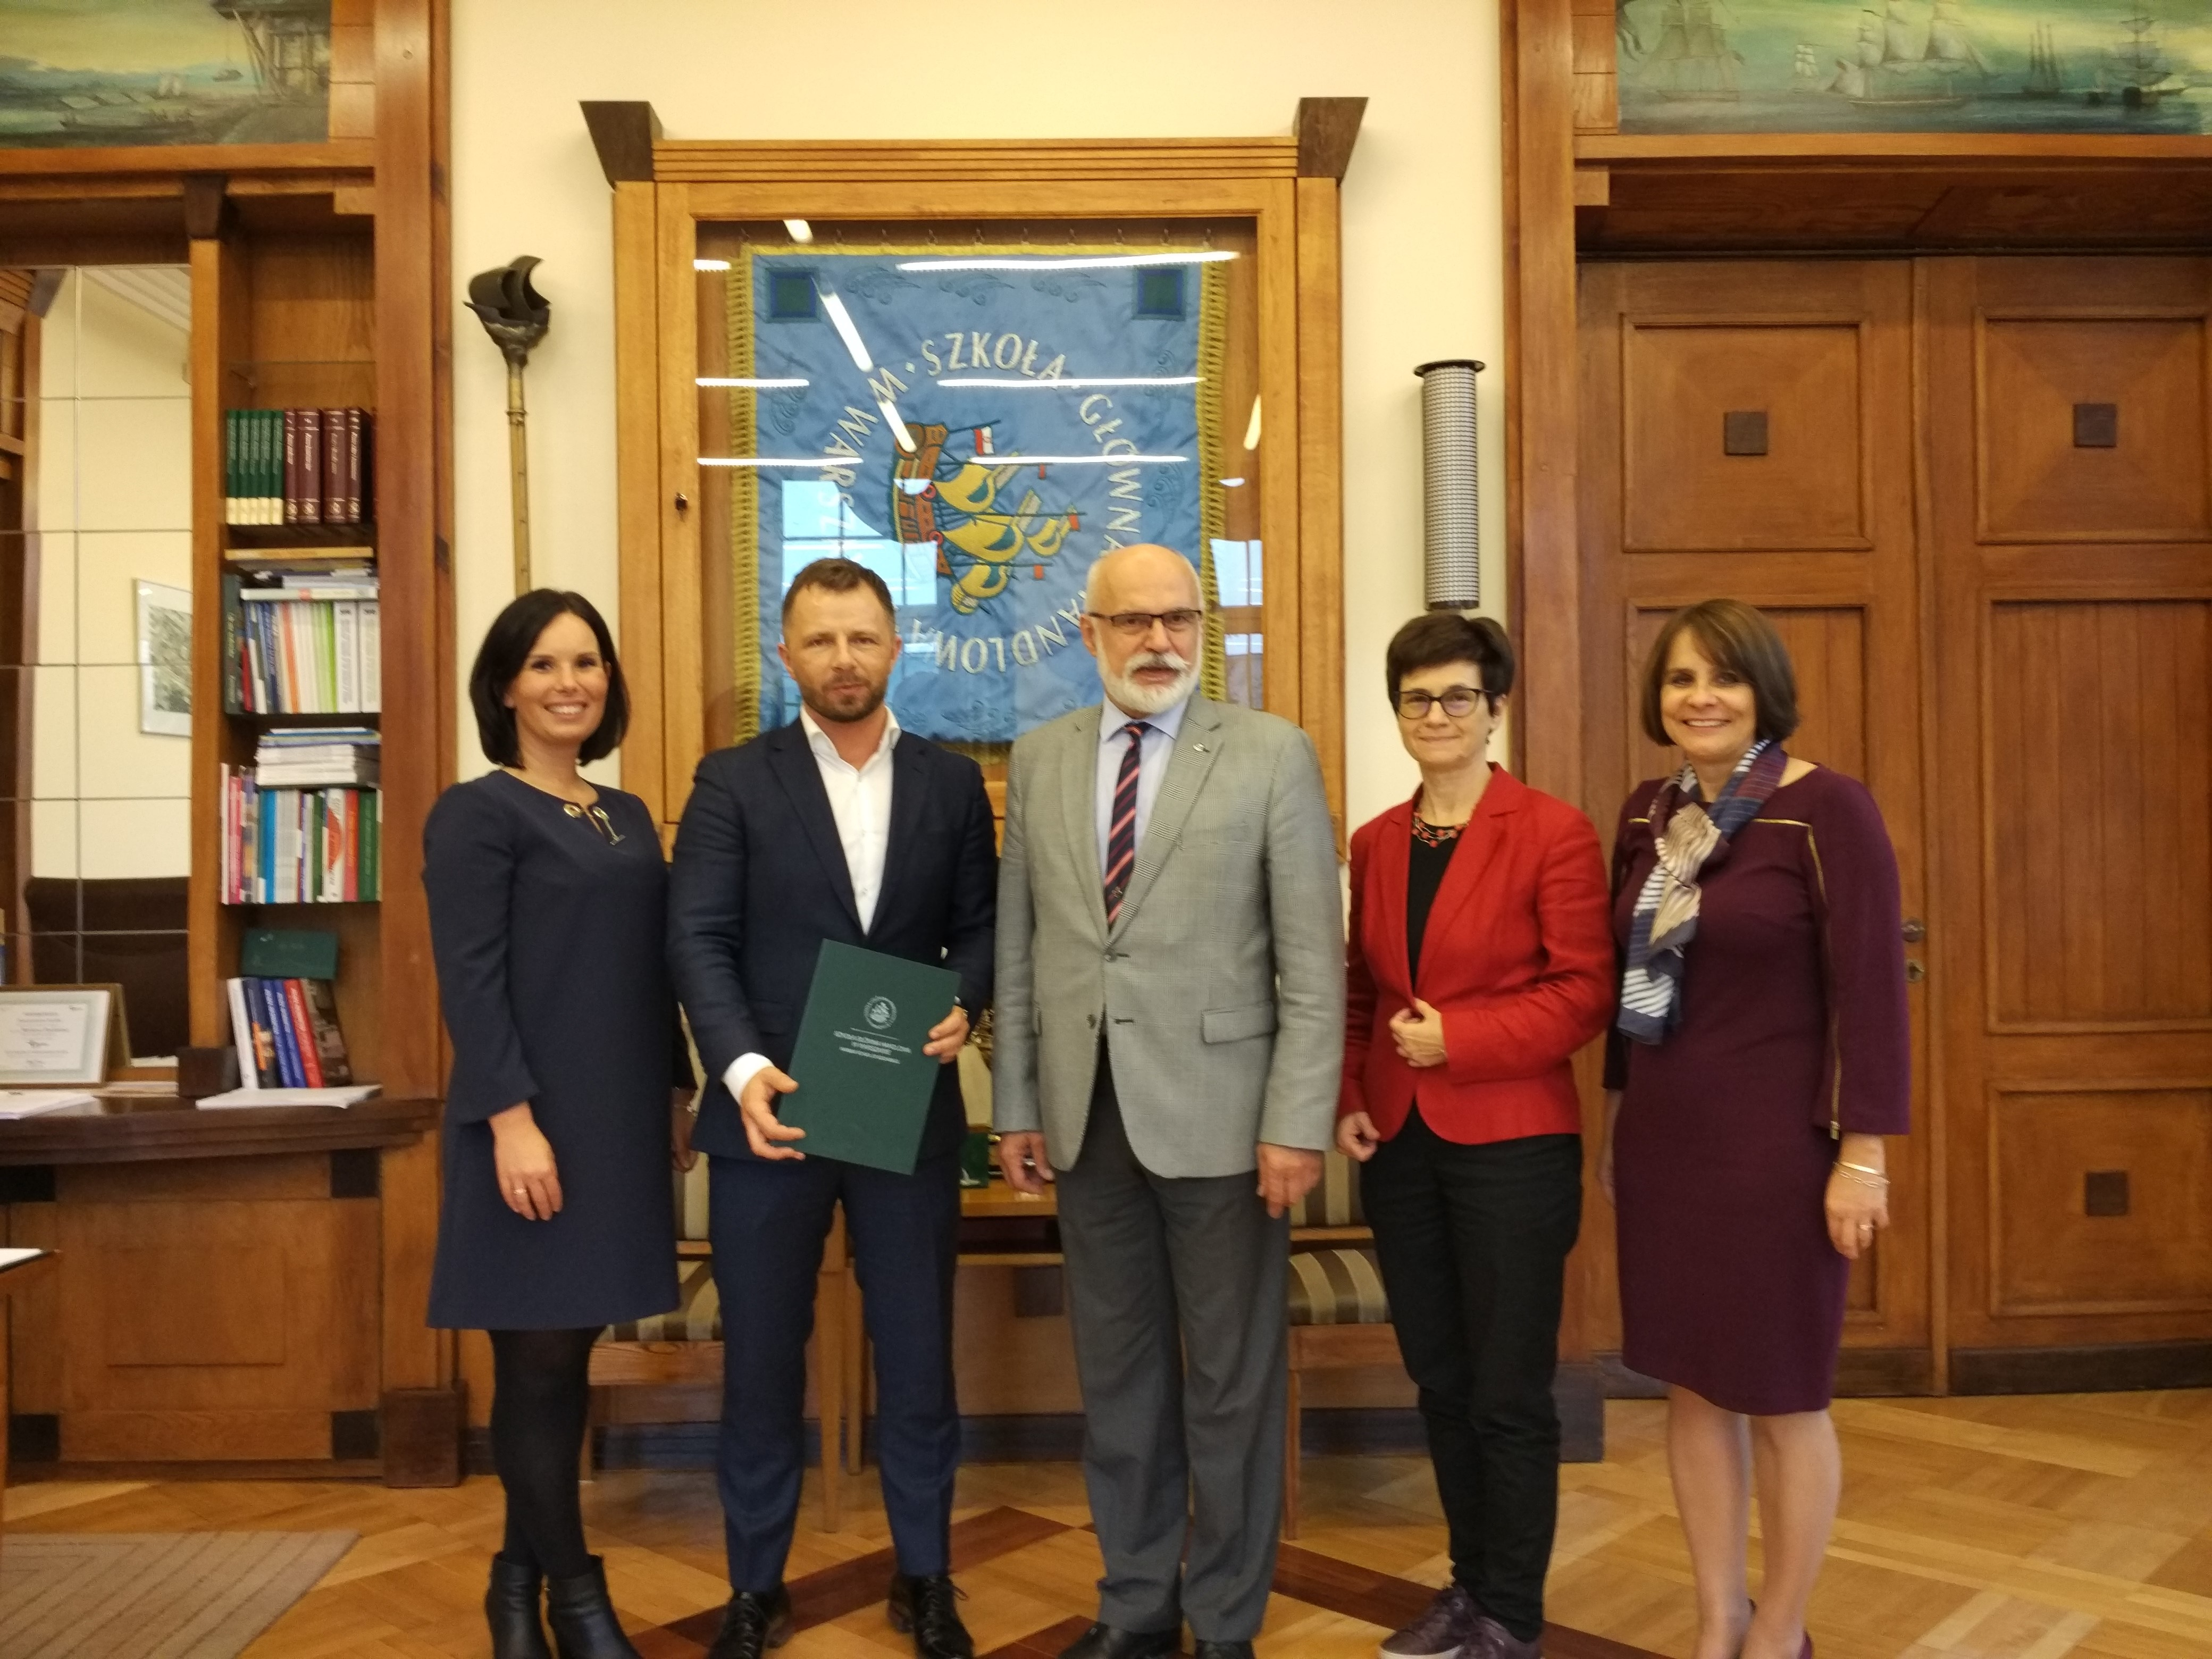 Partnership of VGL Group and Warsaw School of Economics